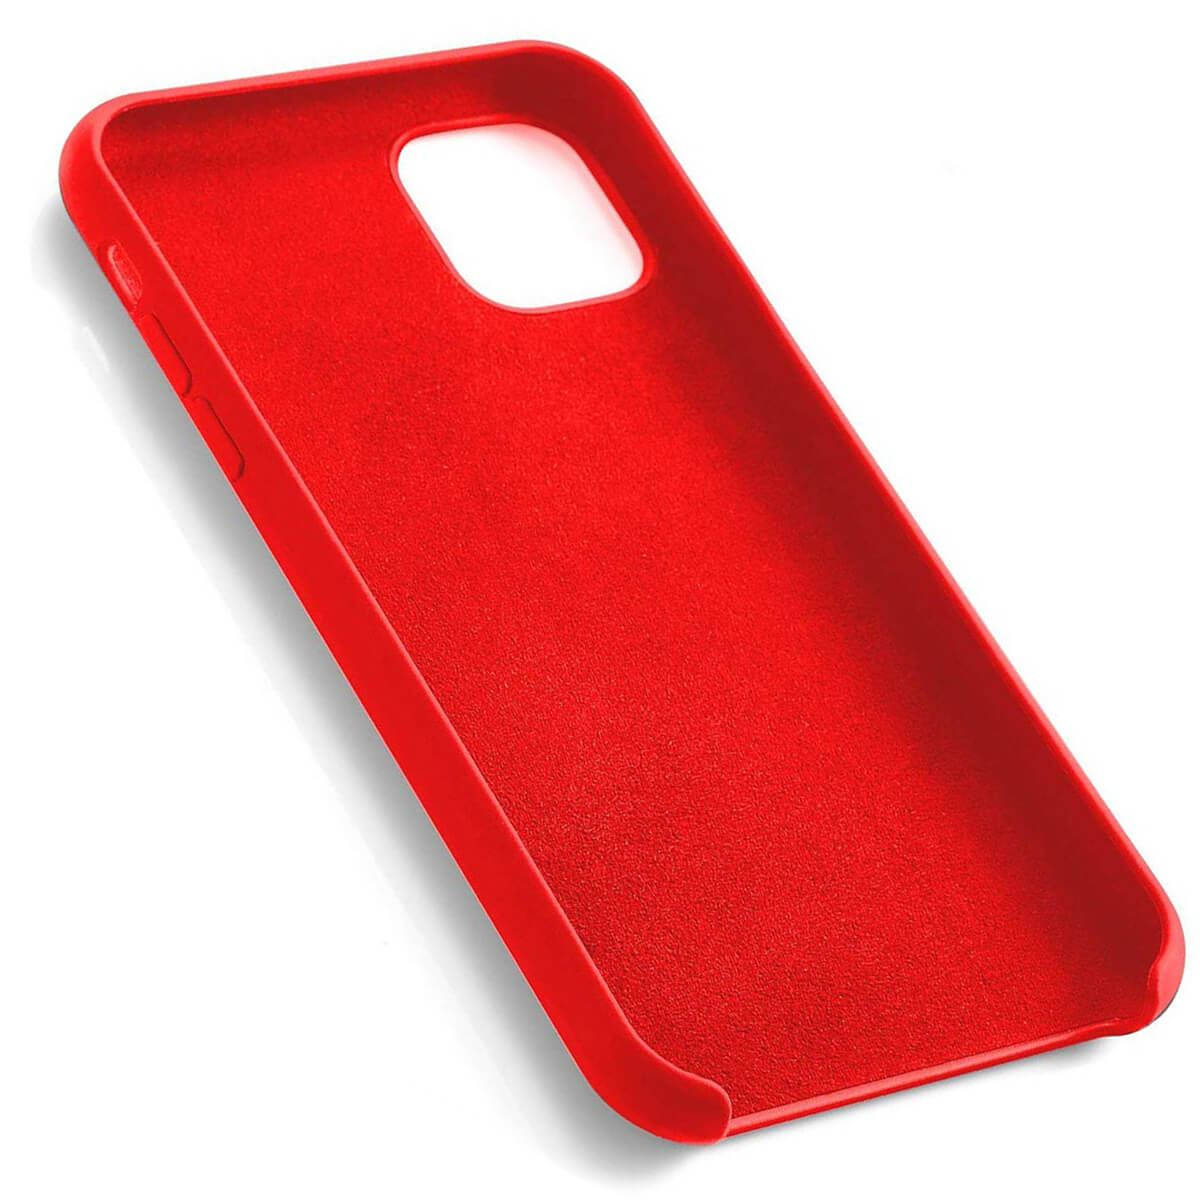 Liquid-Silicone-Shockproof-Case-For-Apple-iPhone-Soft-Matte-Back-Phone-Cover thumbnail 3